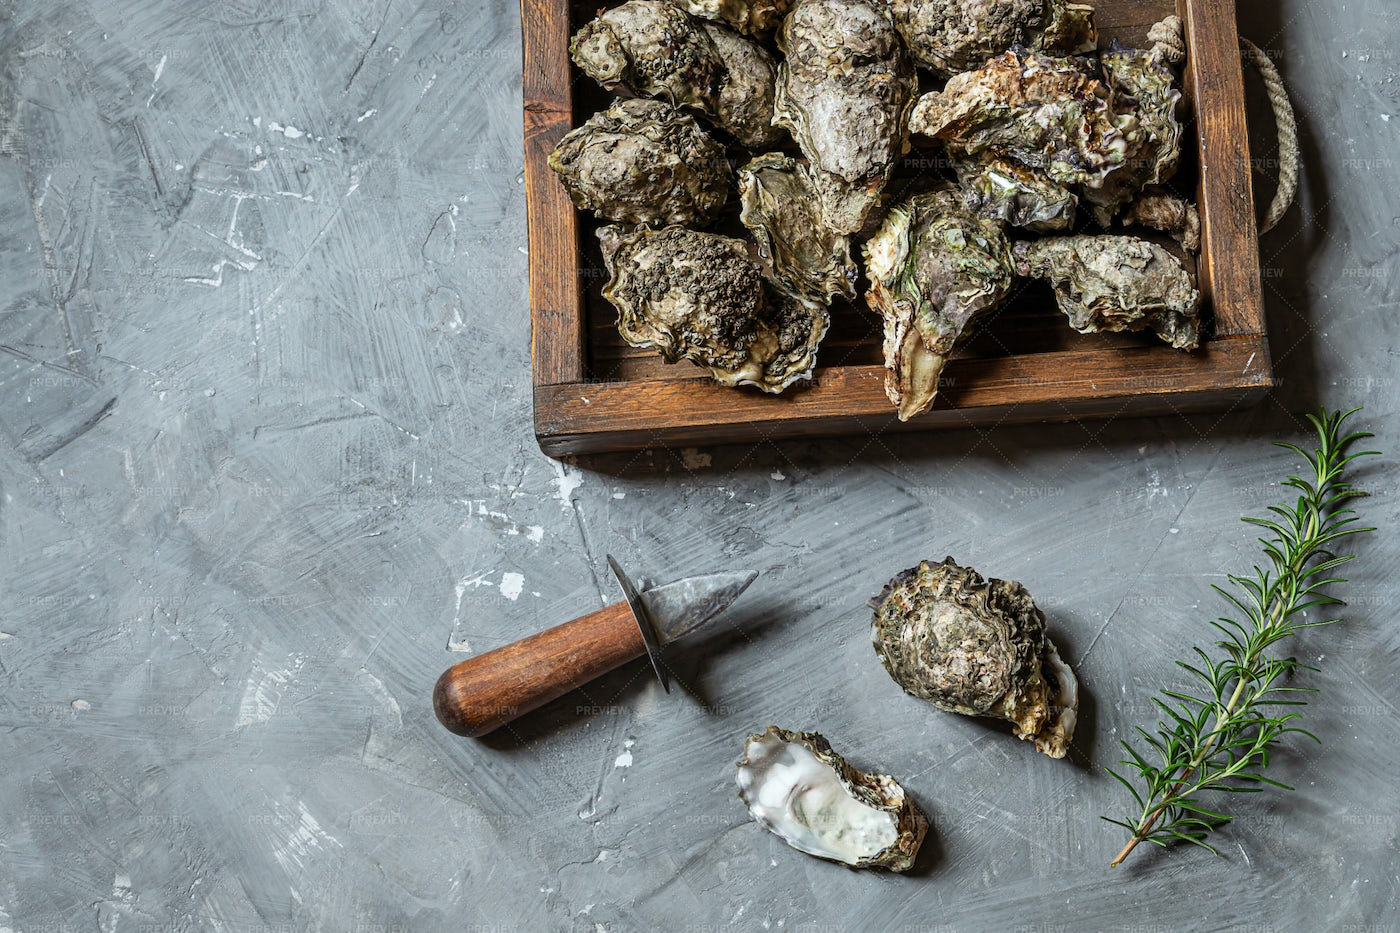 Oysters In Wooden Tray: Stock Photos